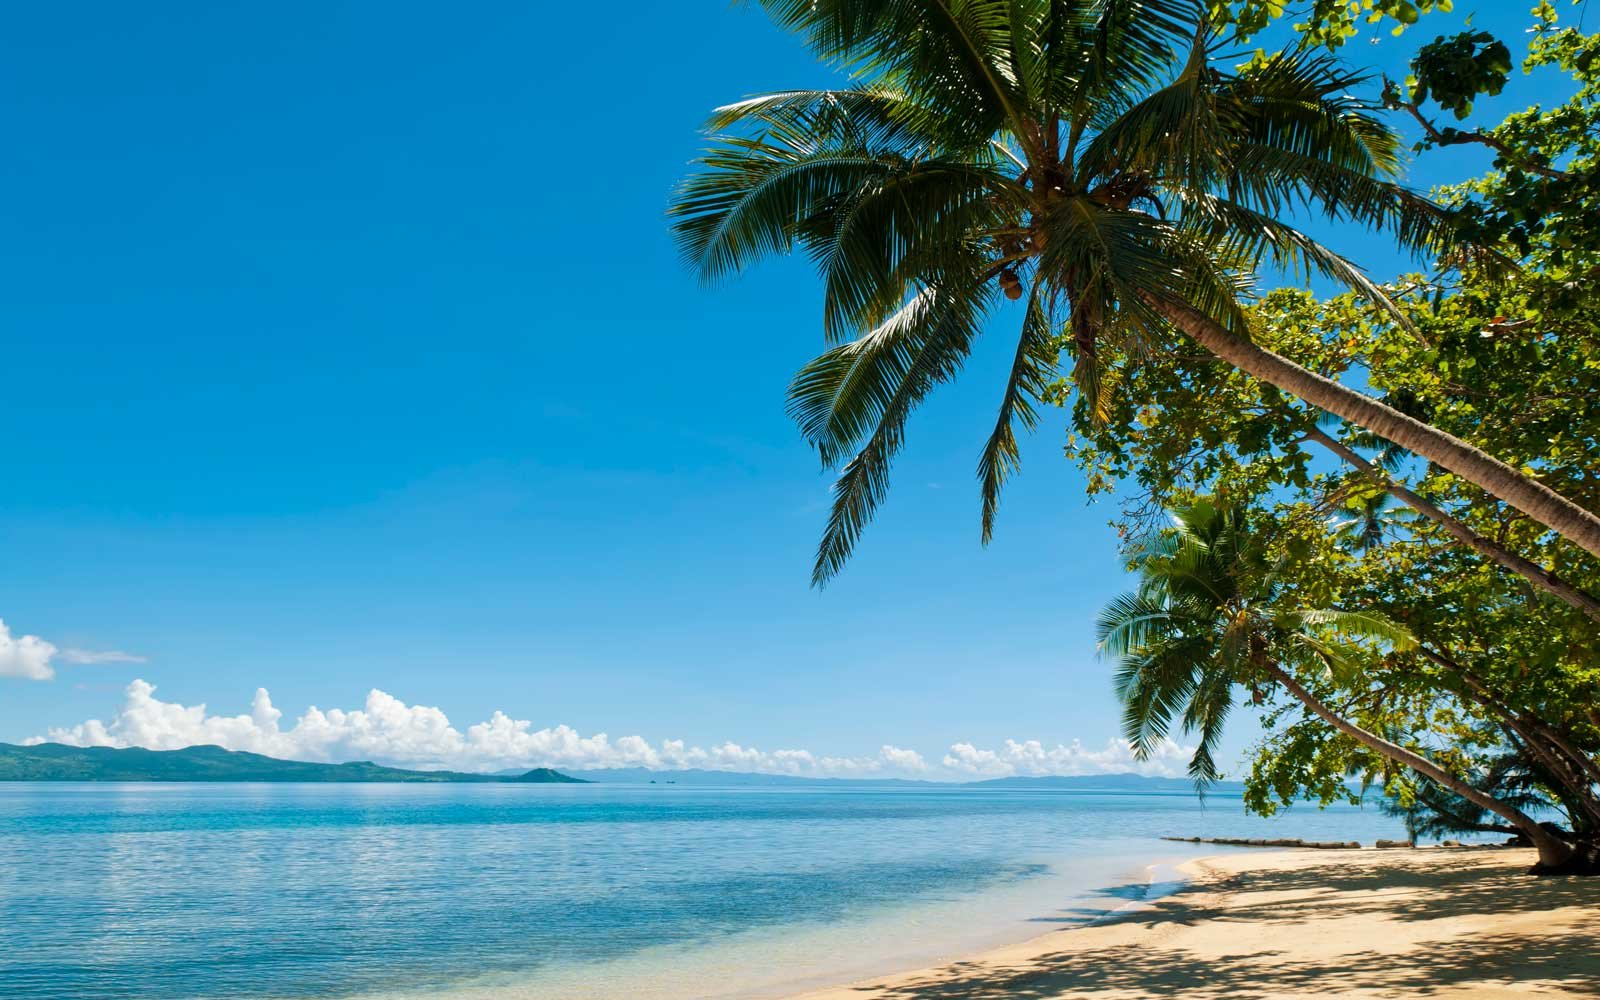 Flights to Fiji Are Super Cheap Right Now — but You Have to Book Fast